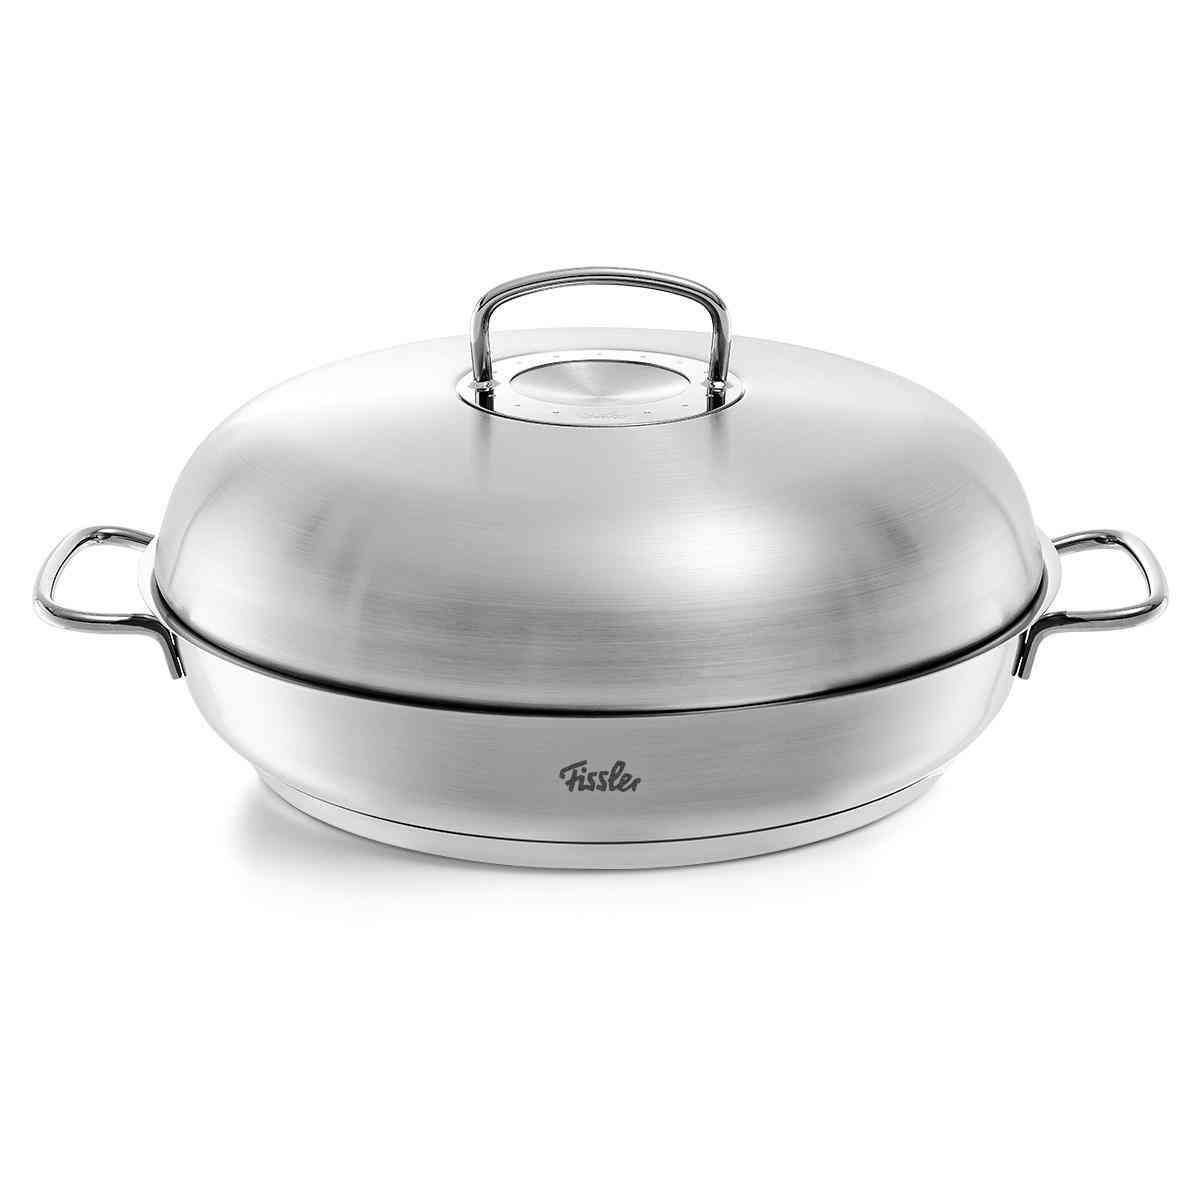 Open Box - original-profi collection® Roasting Pan with Domed Lid, 12.6 Inch